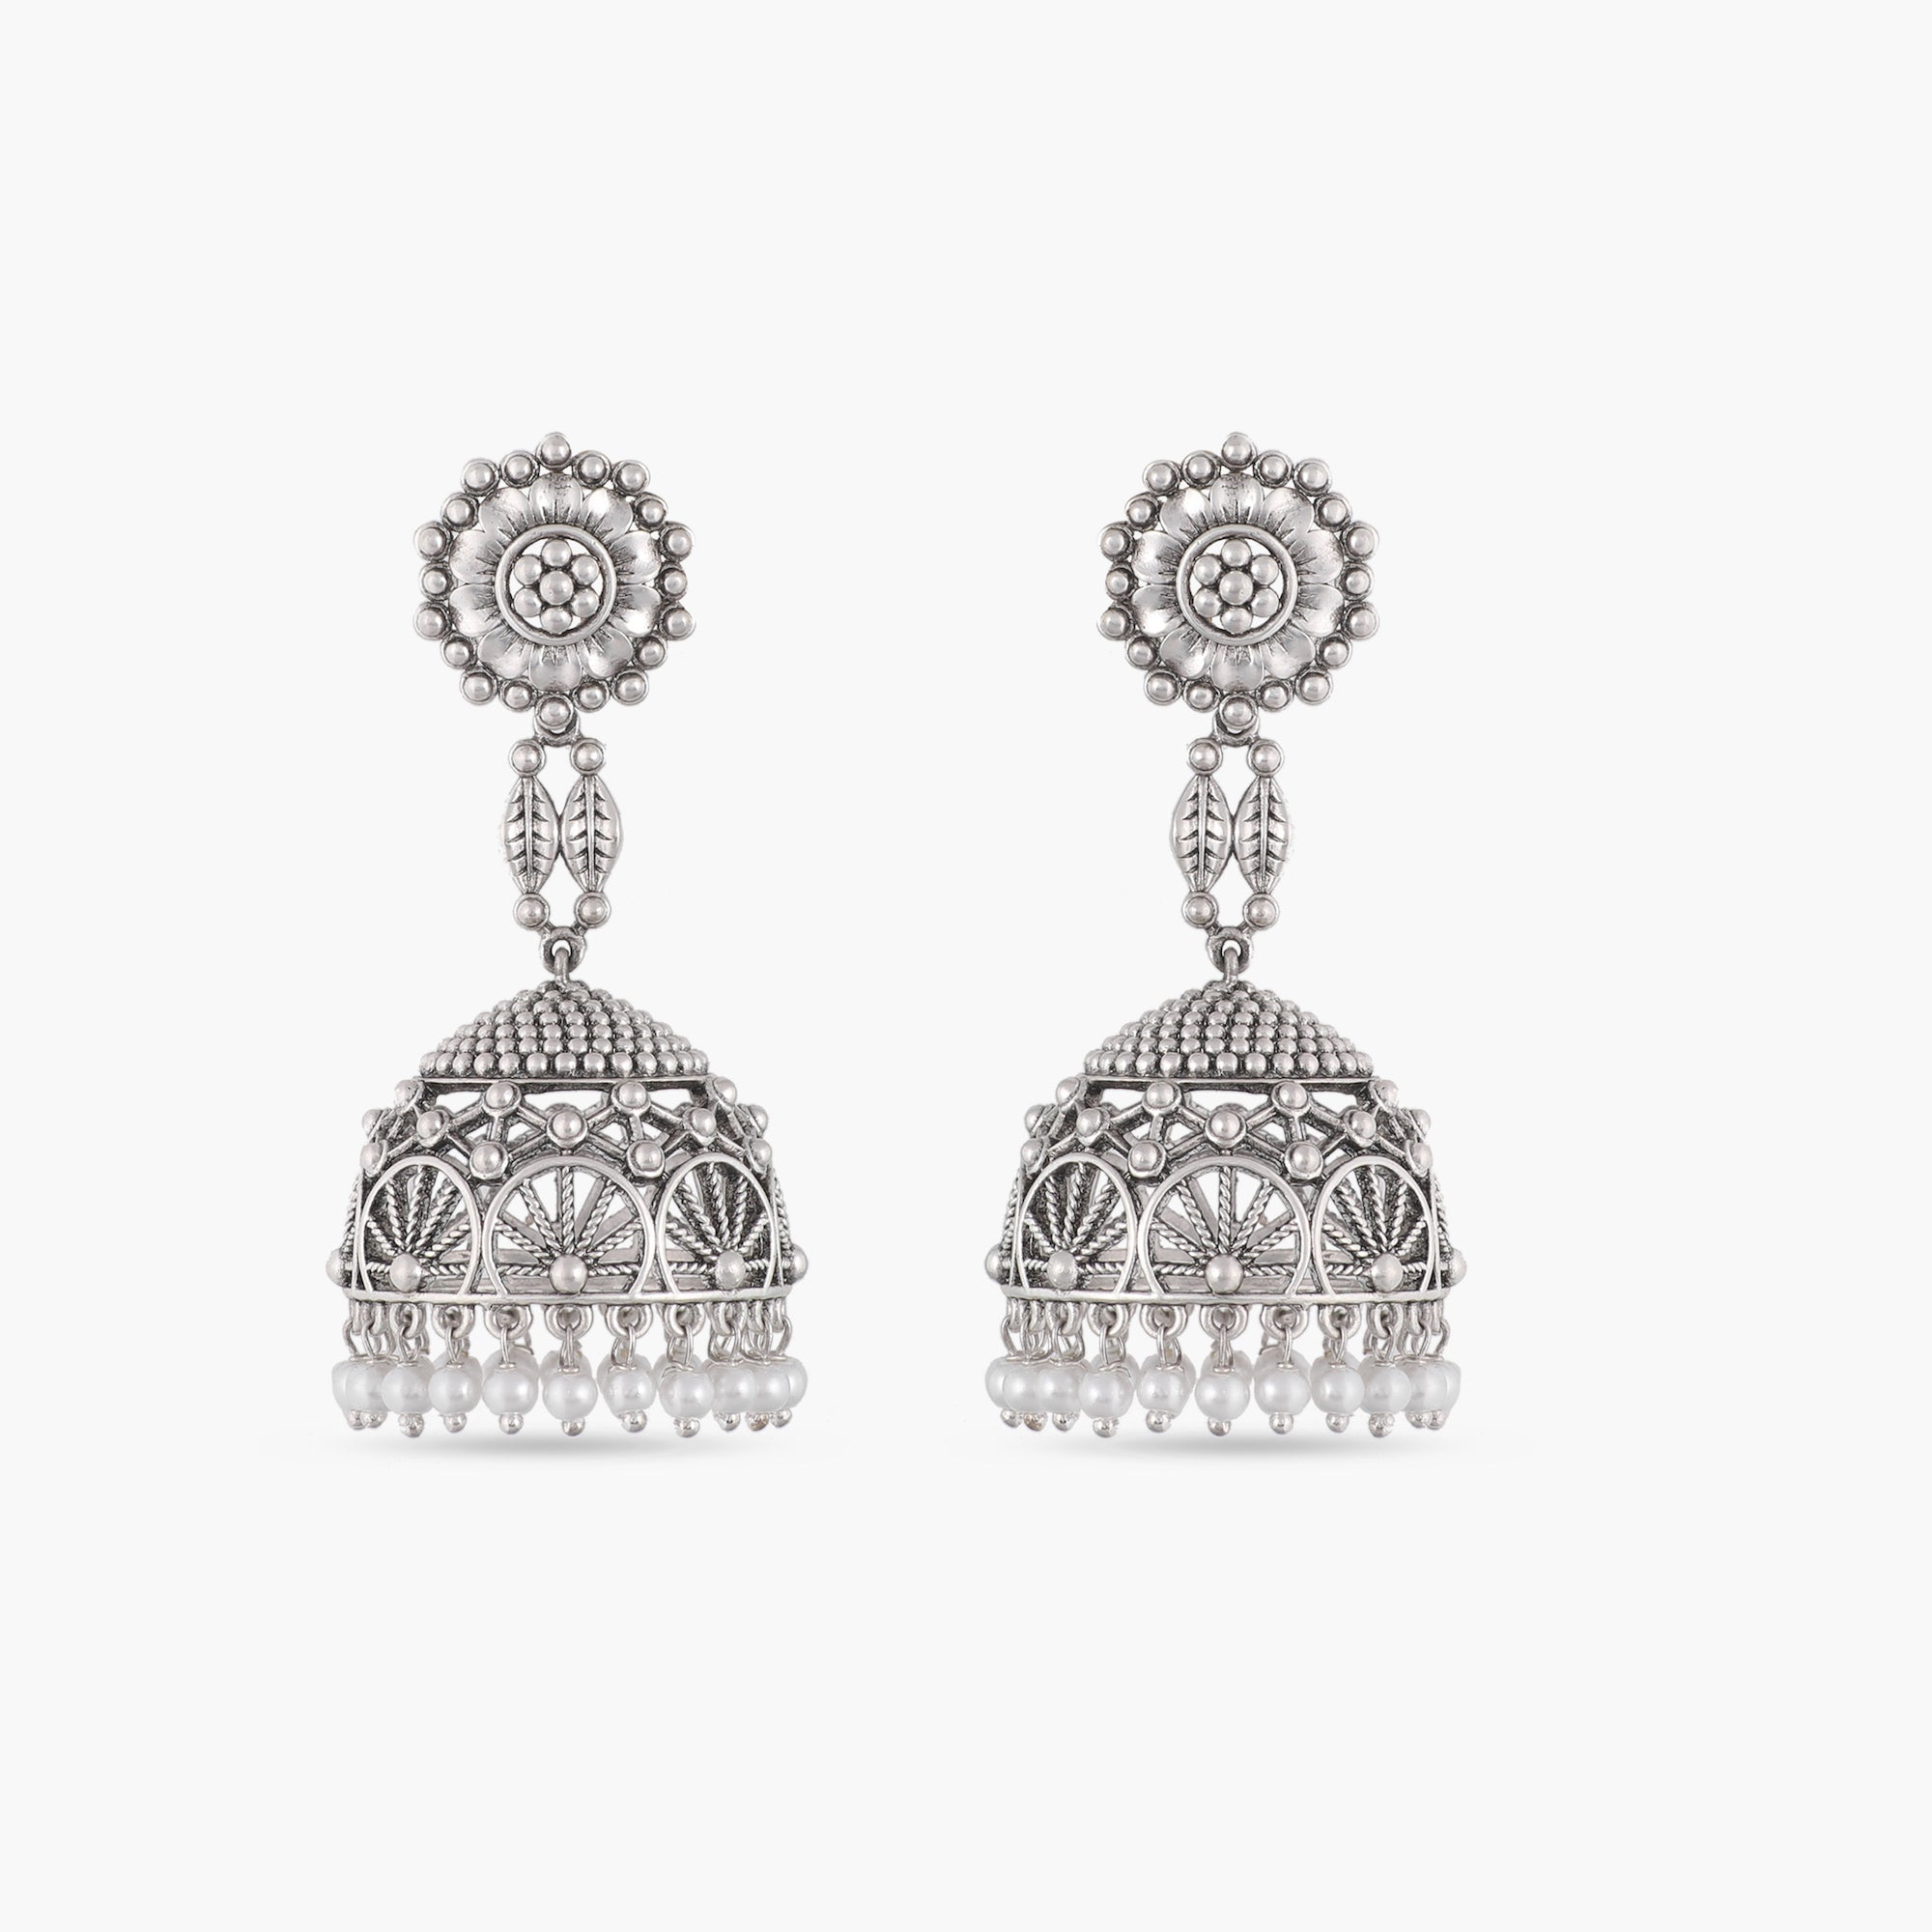 Pusp Antique Silver Jhumka Earrings